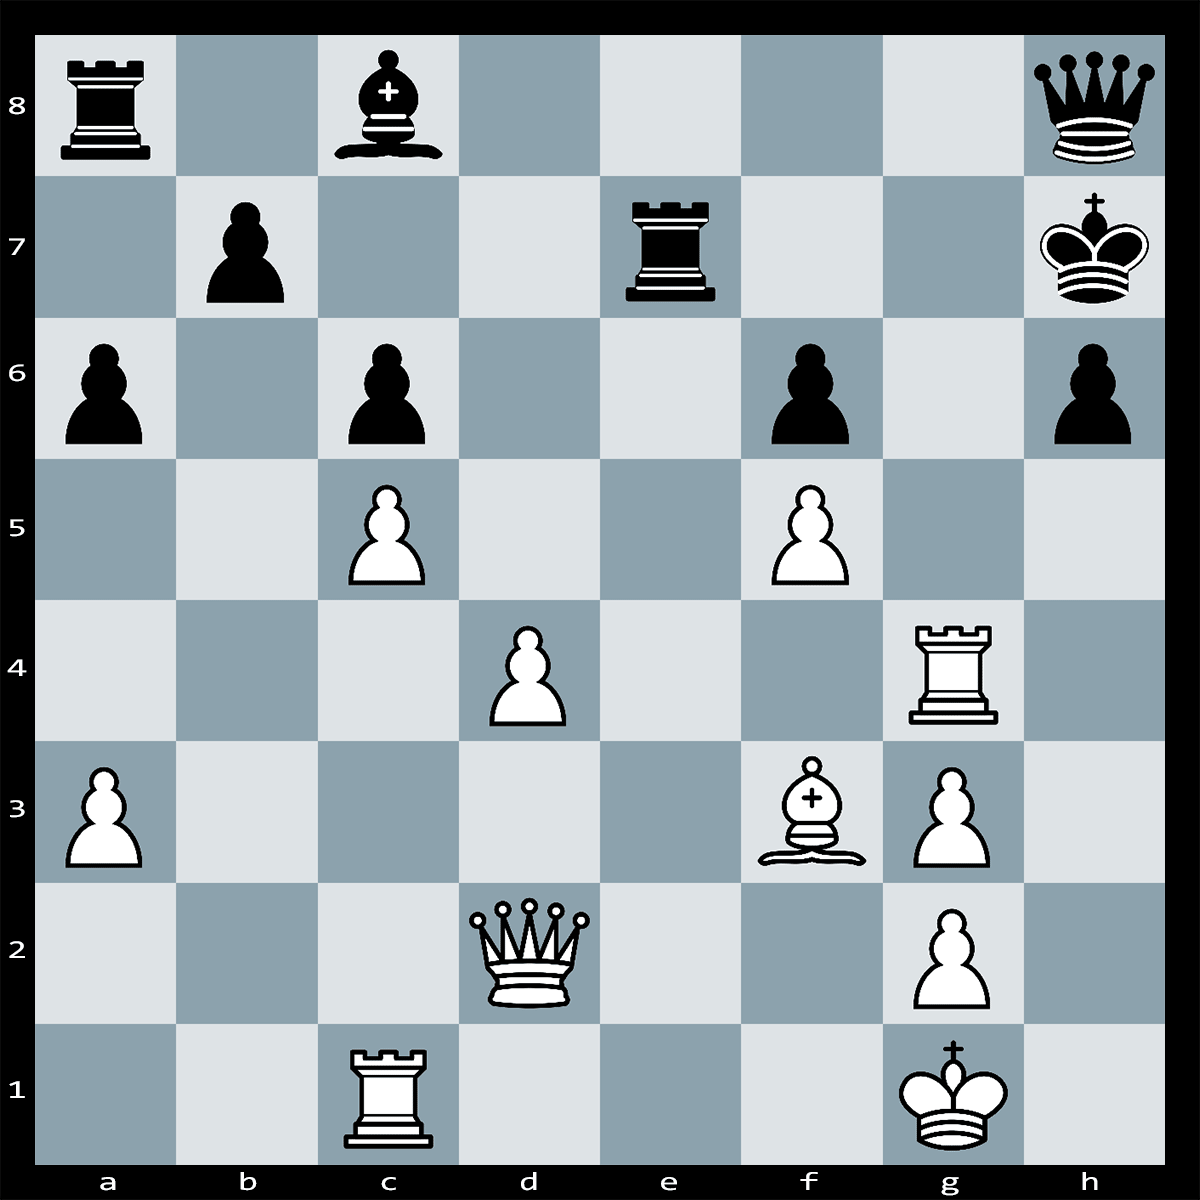 Chess Puzzle #317 | In this position White can force checkmate in six moves. Can you see how this is achieved?